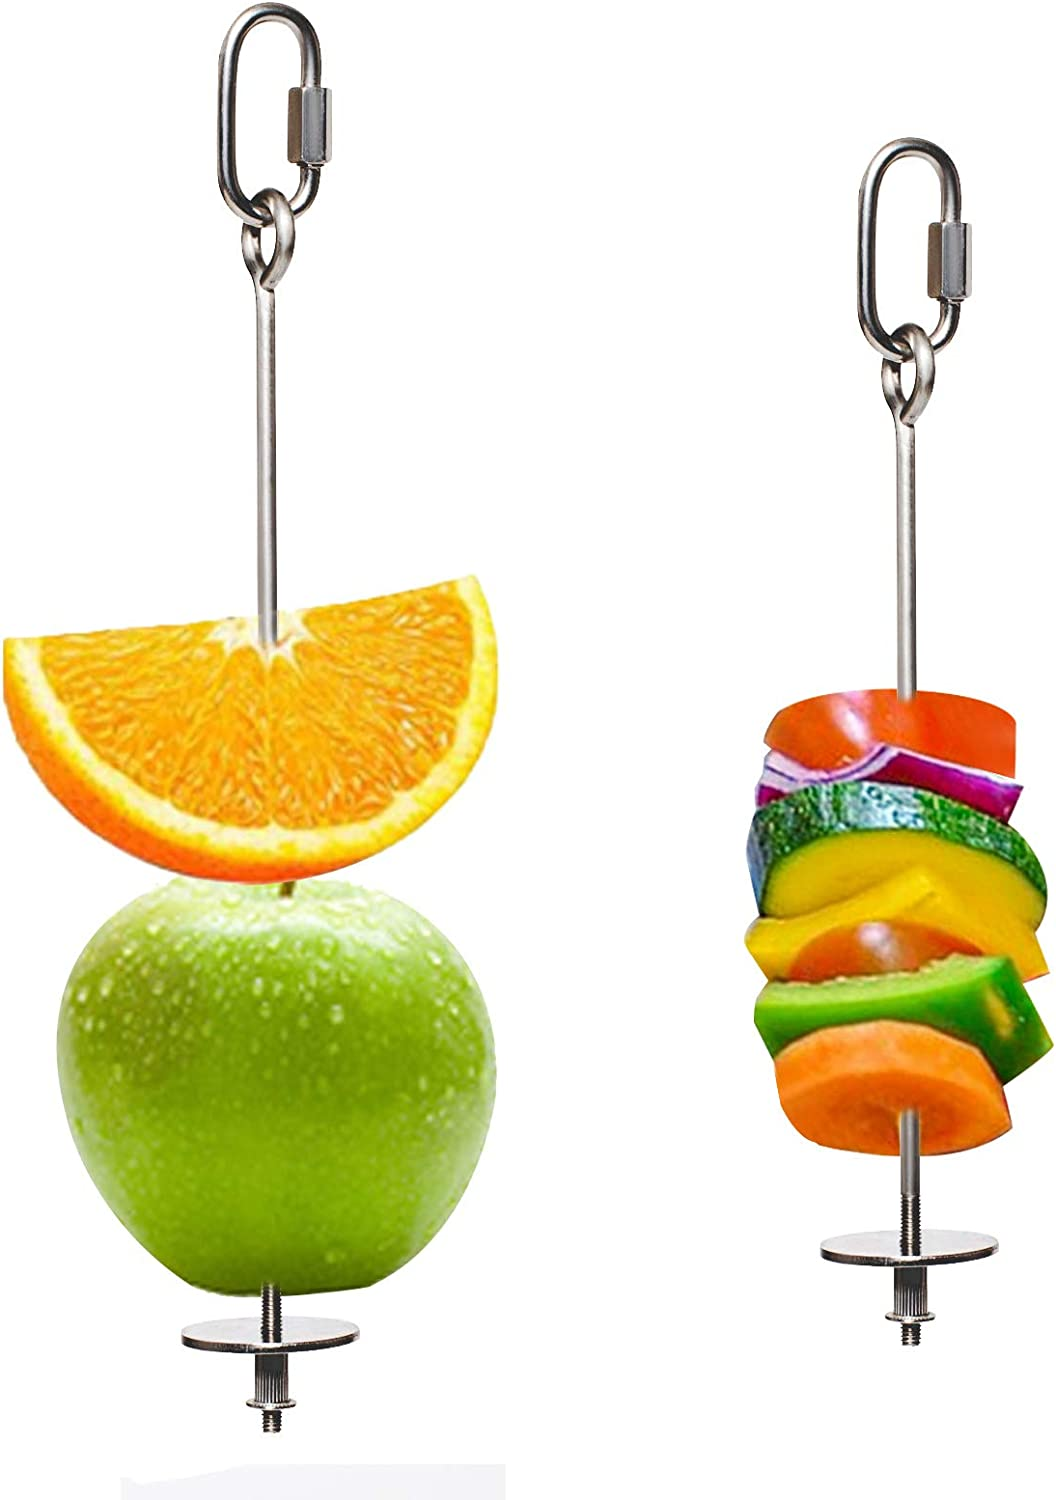 LSSH 2PCS Premium Bird Food Holder, Bird Treat Skewer,Bird Skewers,Bird Feeders, Stainless Steel Parrot Fruit Vegetable Stick Holder, Bird Feeder Toy,Foraging Toy, Bird Food Treat Skewer